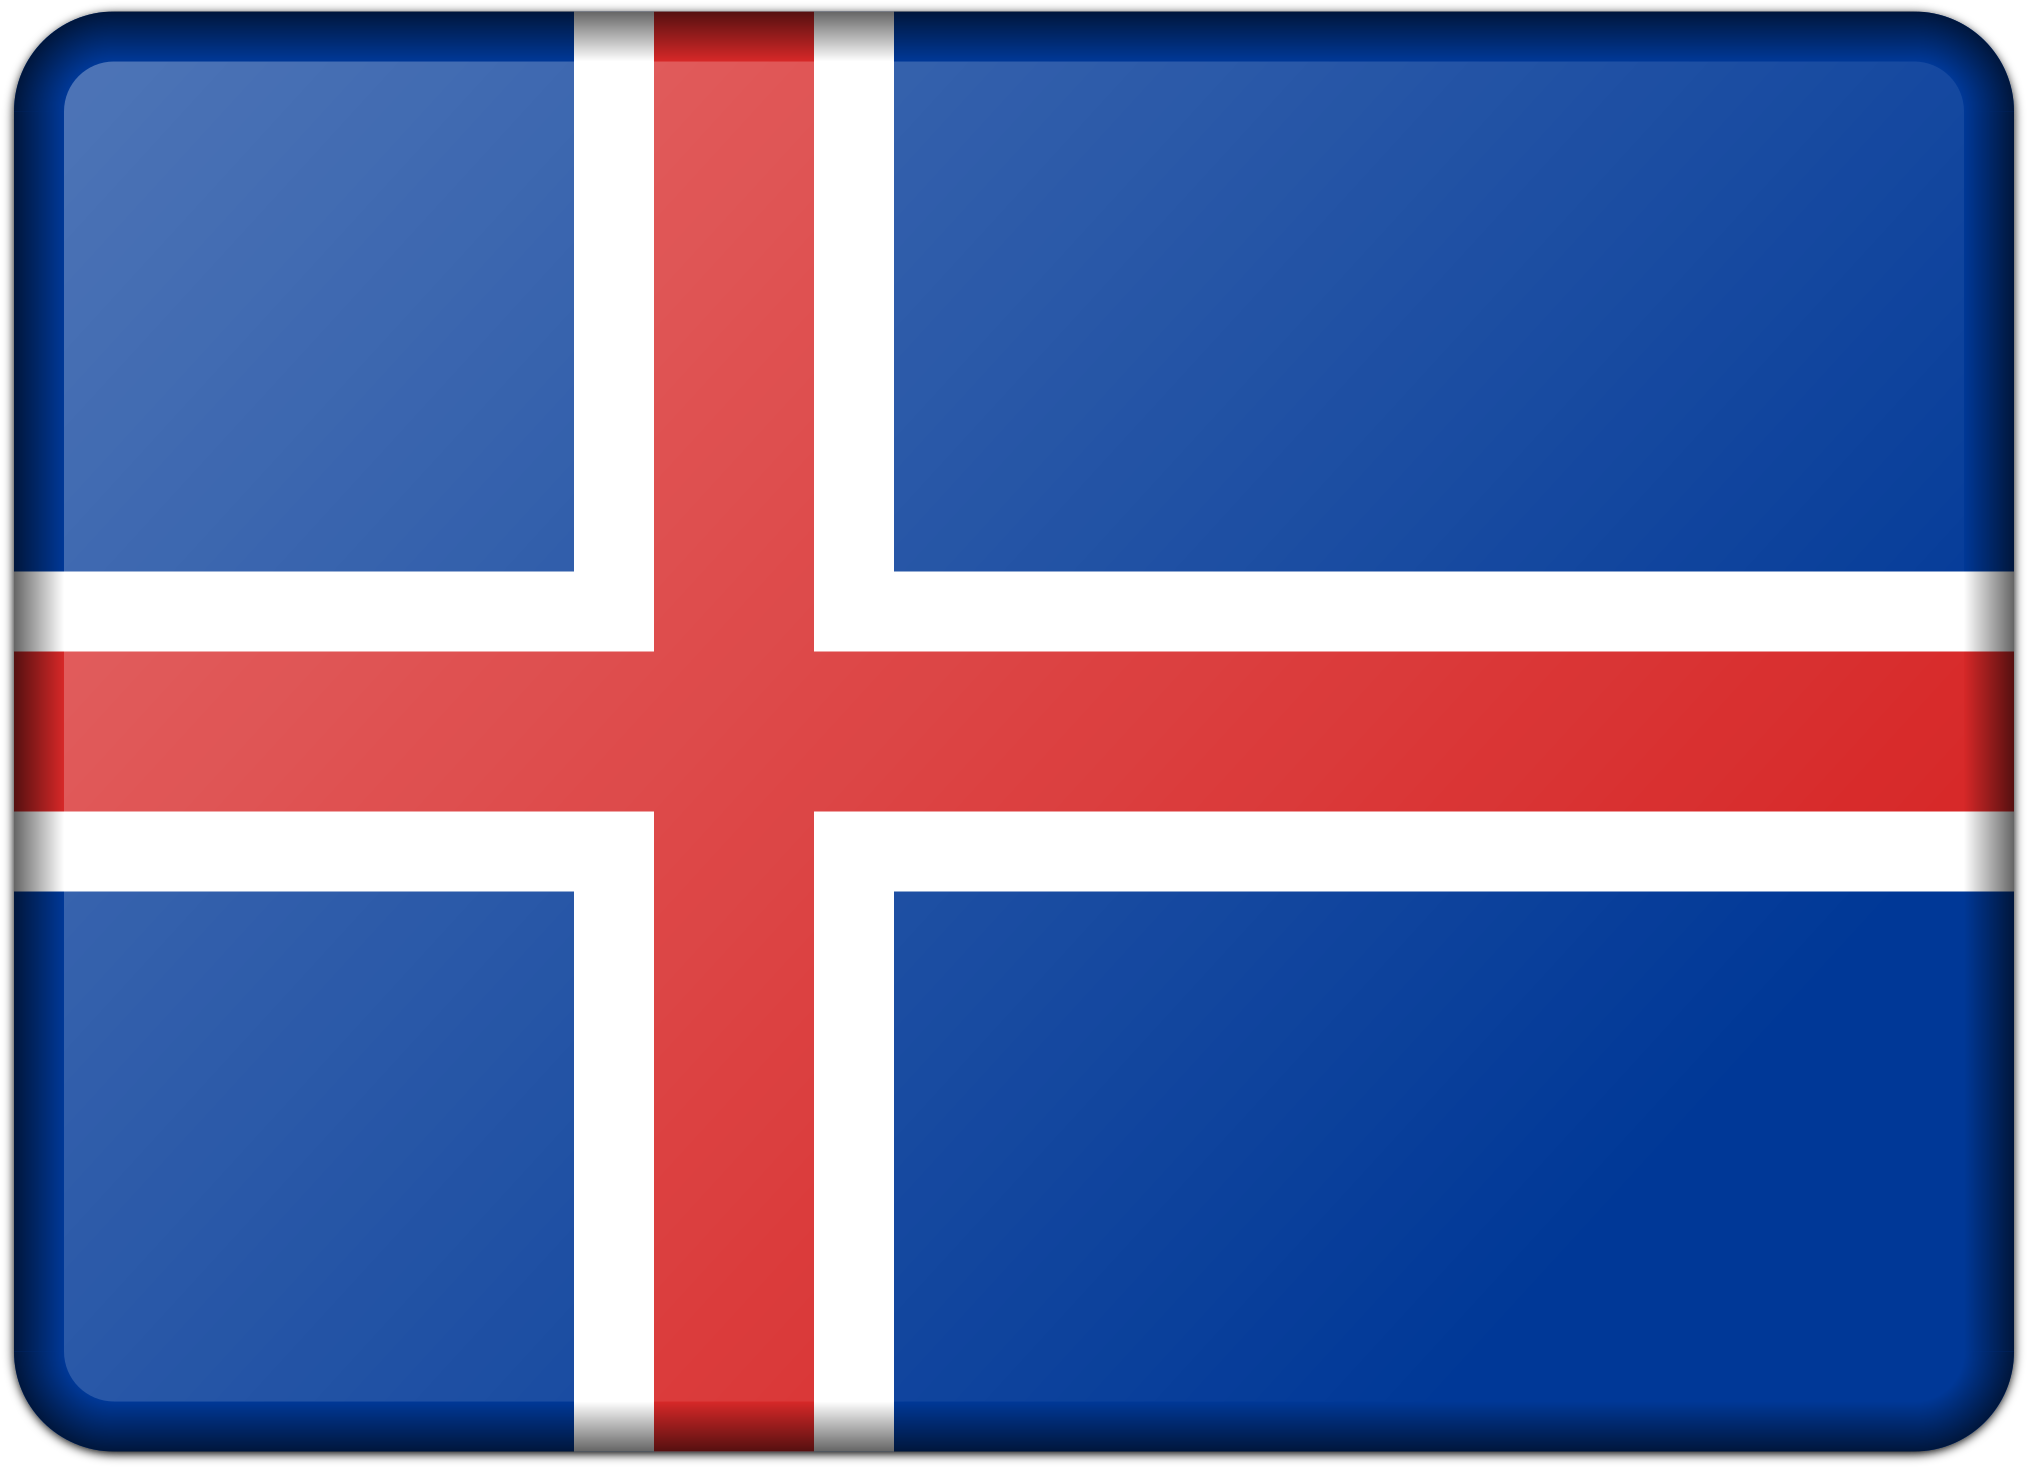 This Free Icons Png Design Of Flag Of Iceland.